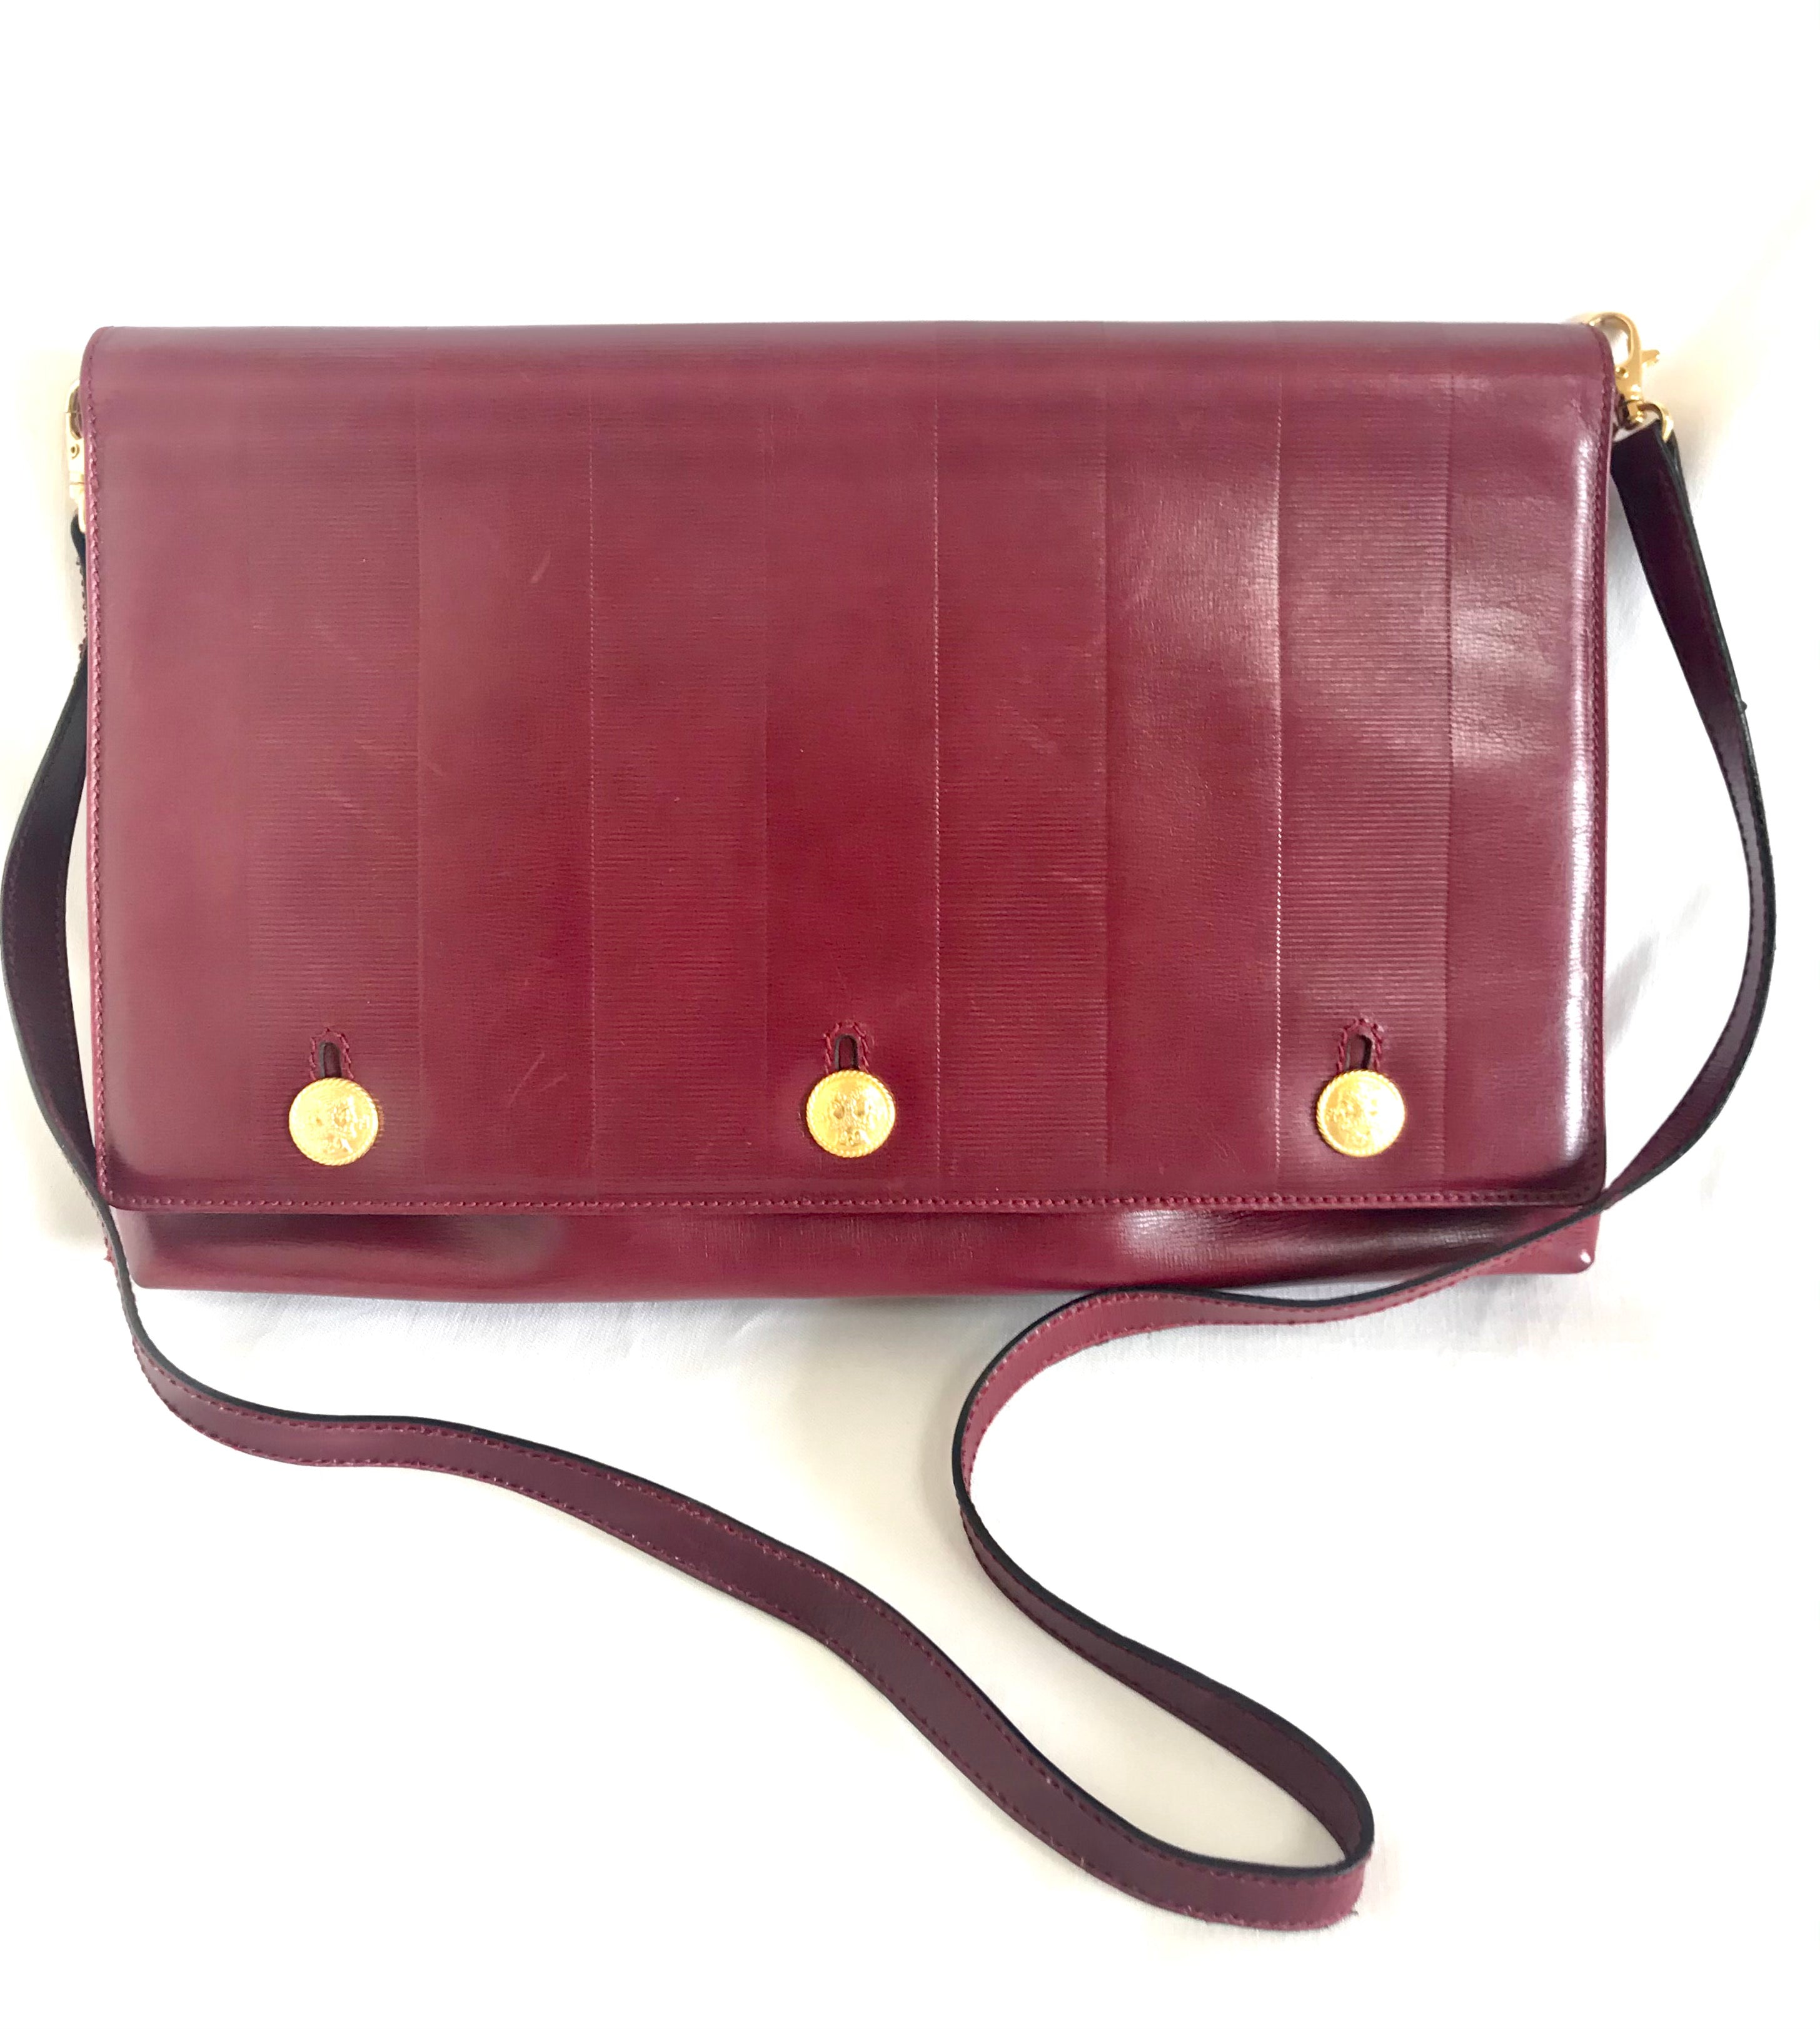 Vintage Fendi Wine Leather Shoulder Bag Large Clutch Purse With Iconi Endappi Where You Can Find Your Favorite Designer Vintages Authentic Affordable And Lovable